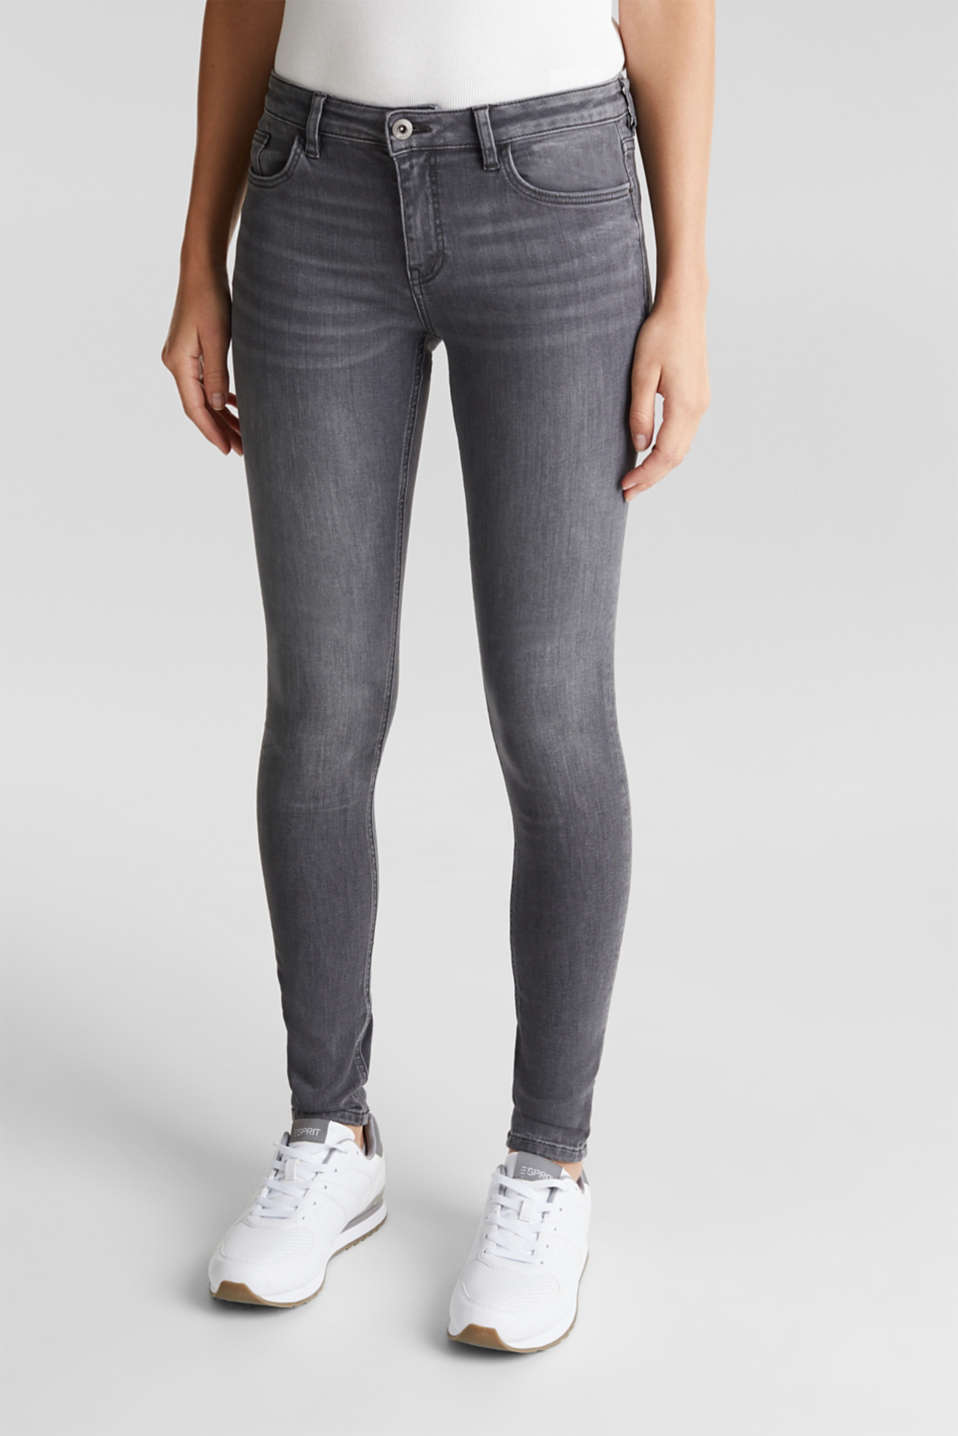 edc - Skinny jeans met superstretch